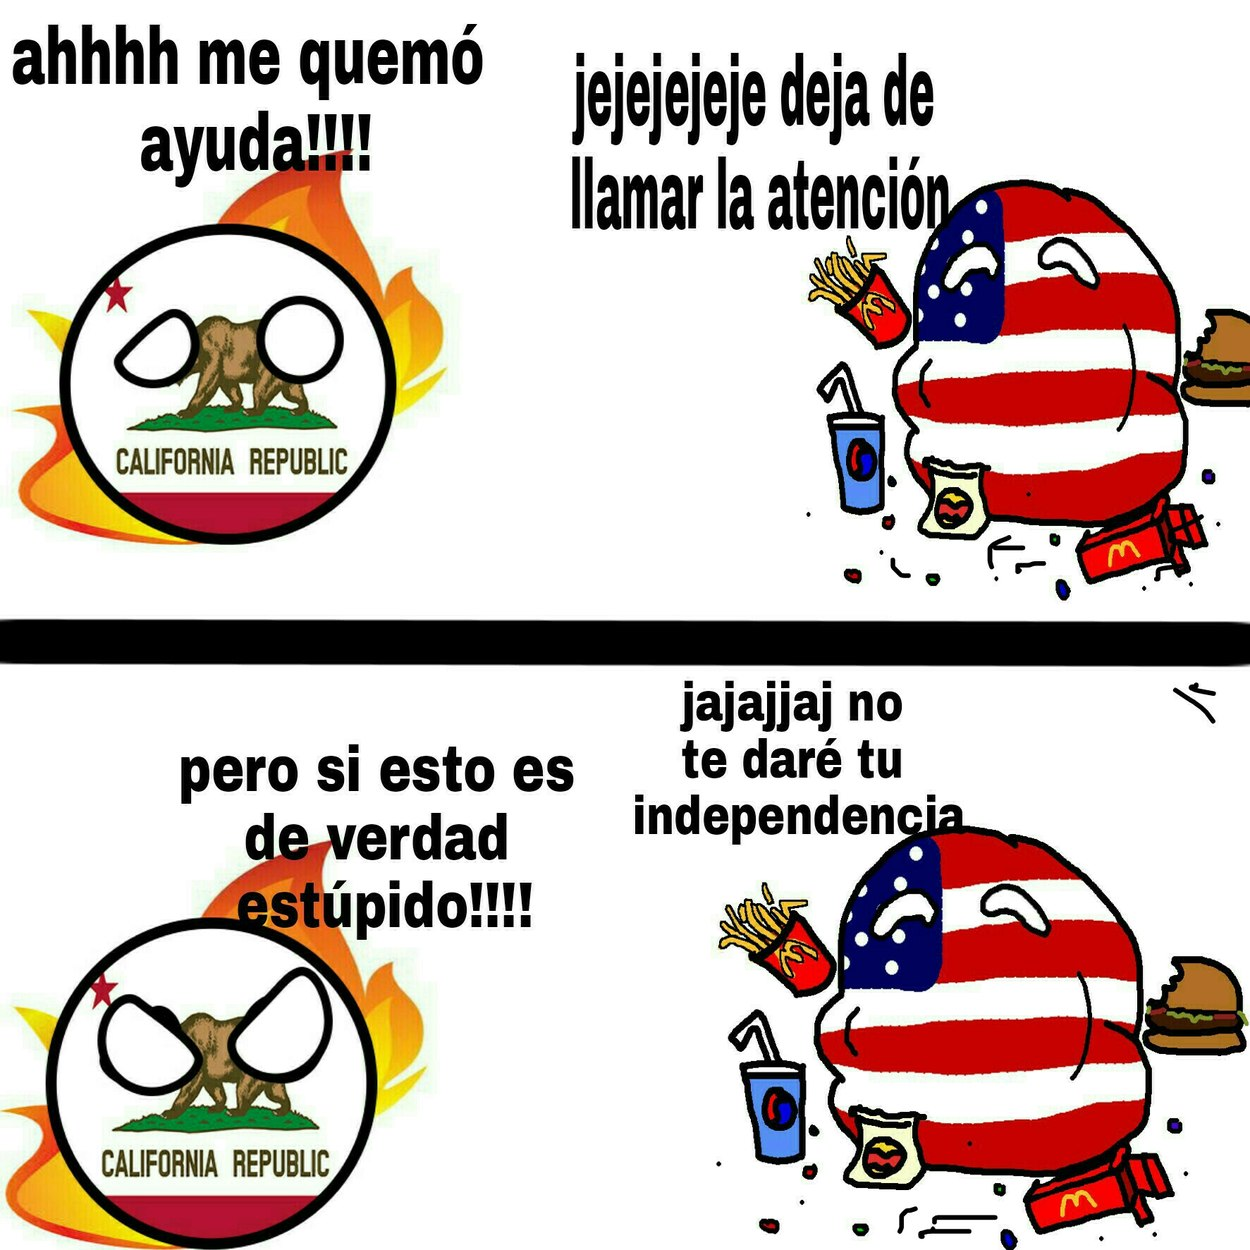 California vs usa - meme